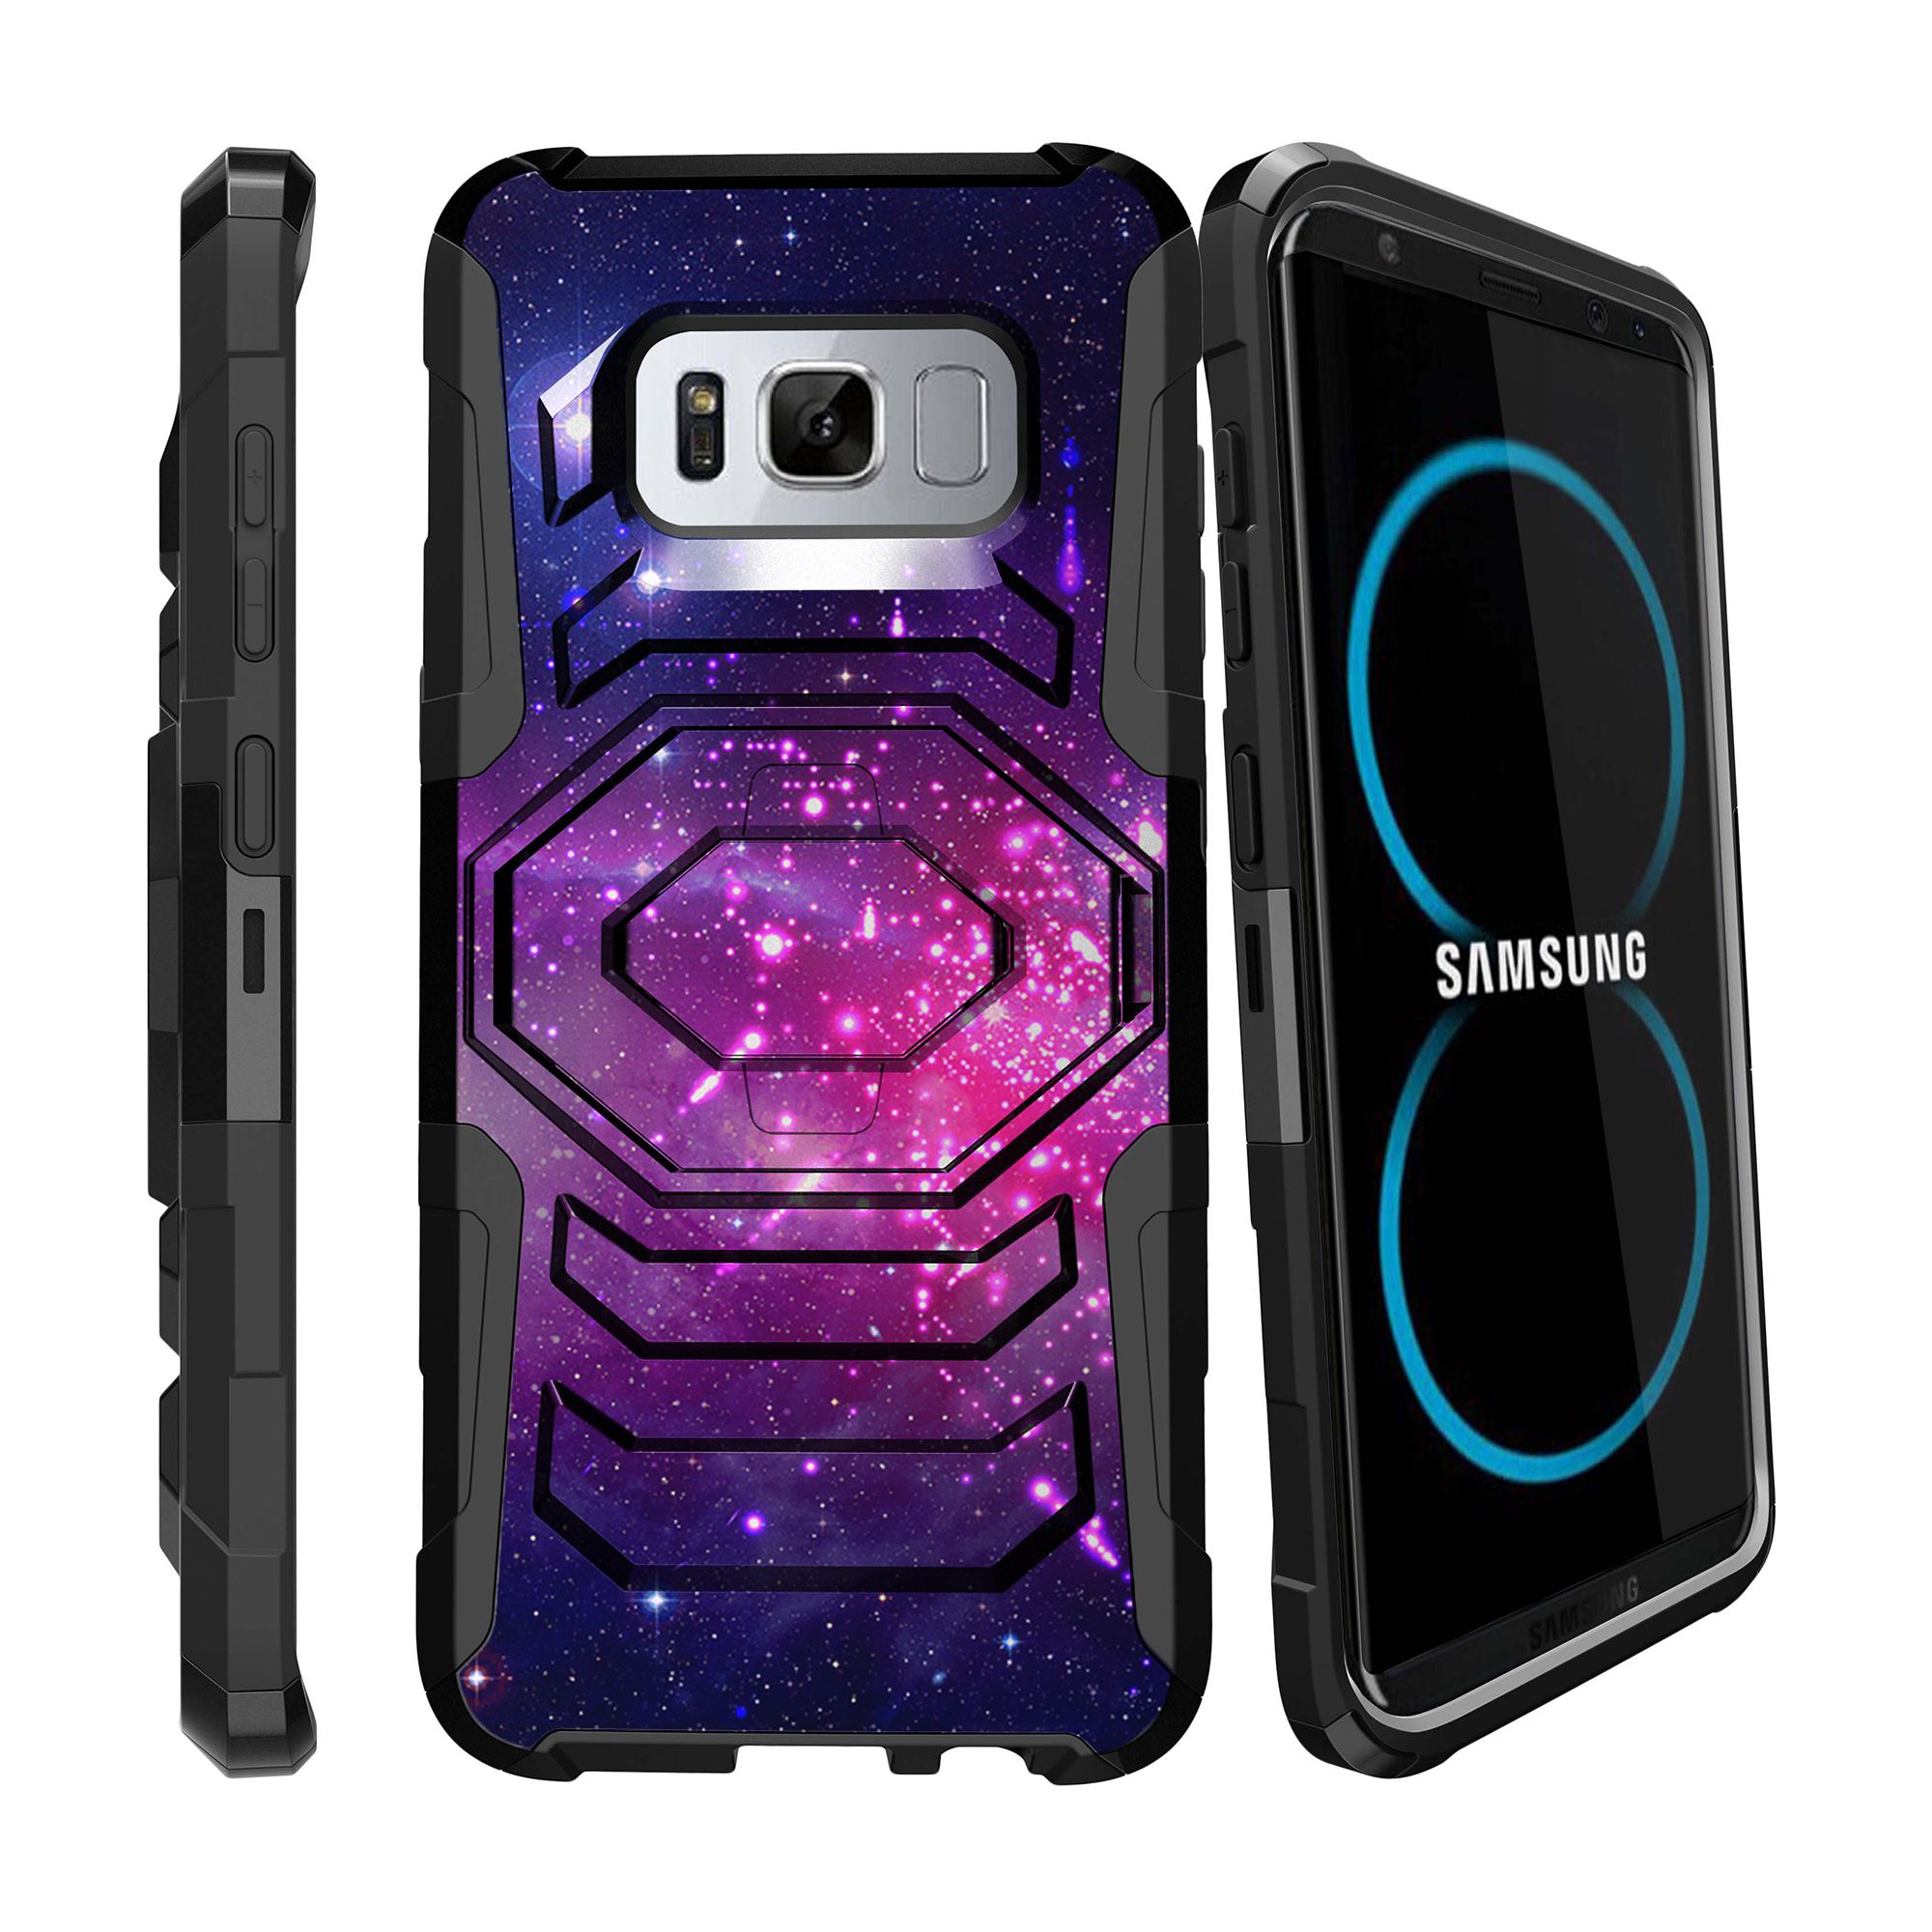 Case for Samsung Galaxy S8 | S8 Galaxy Hybrid Case [ Armor Reloaded ] Heavy Duty Case with Belt Clip & Kickstand Galaxy Collection